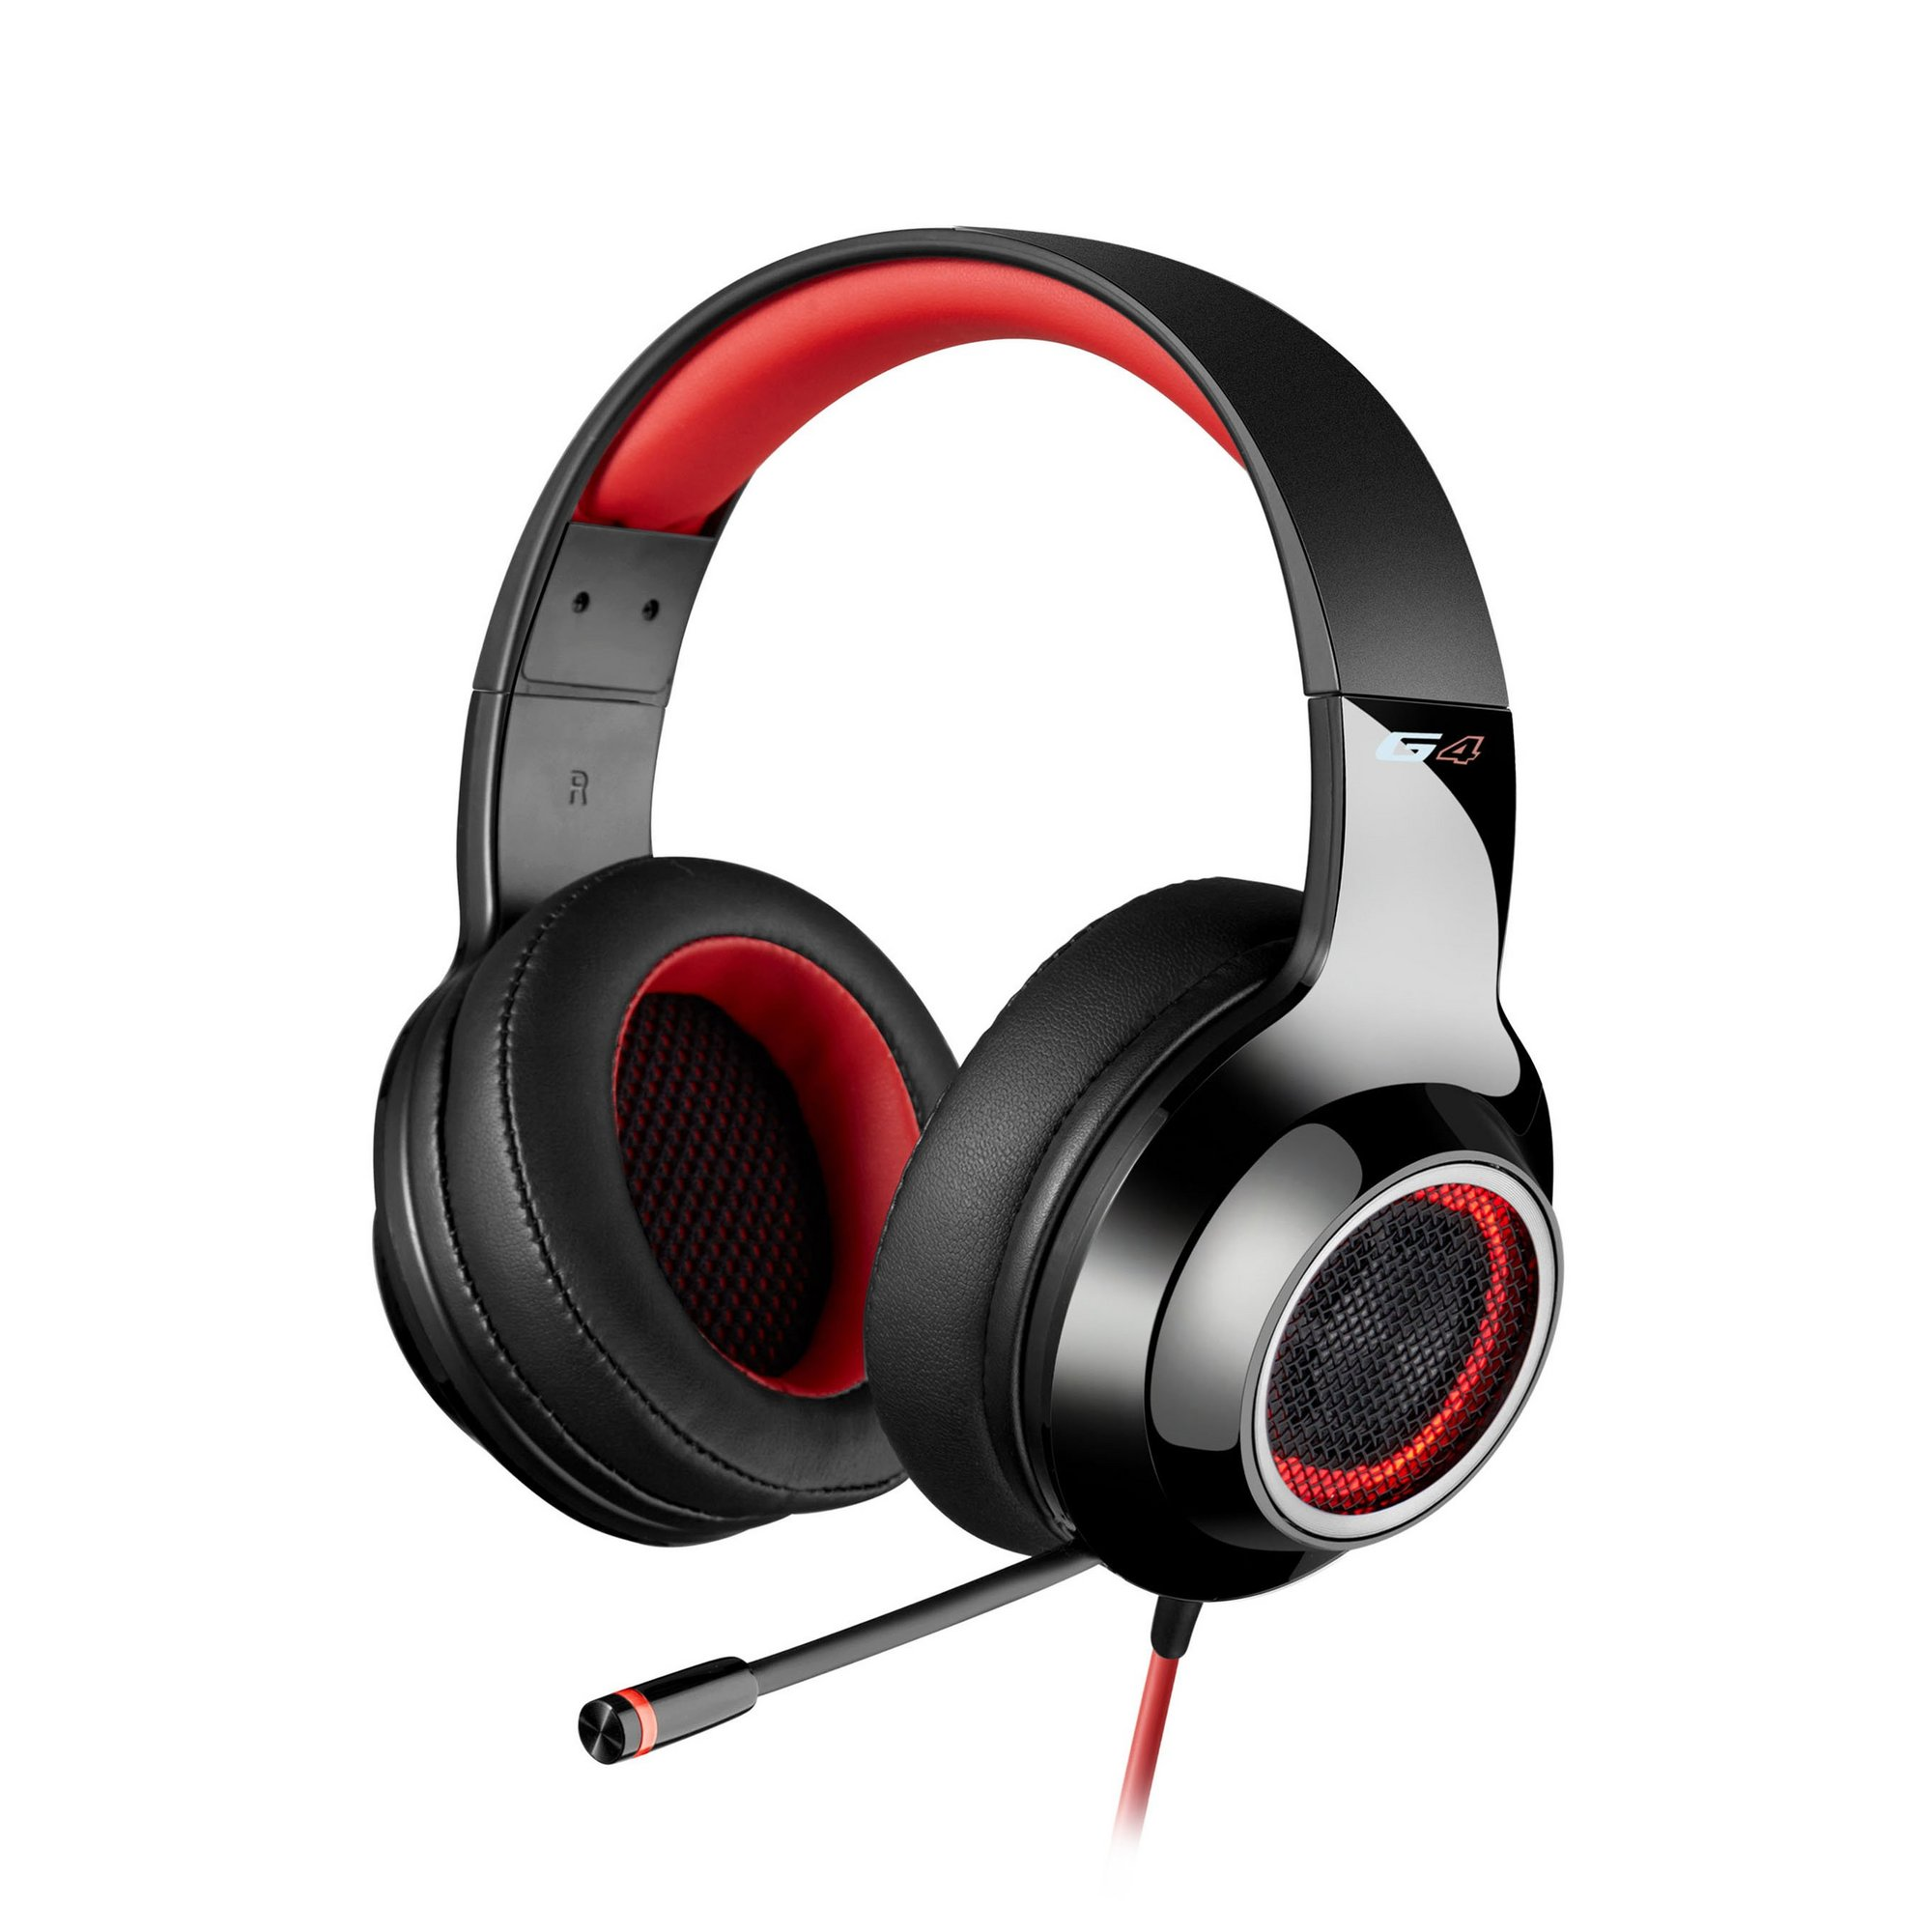 Image of Edifier Professional 7.1 USB Gaming Headset